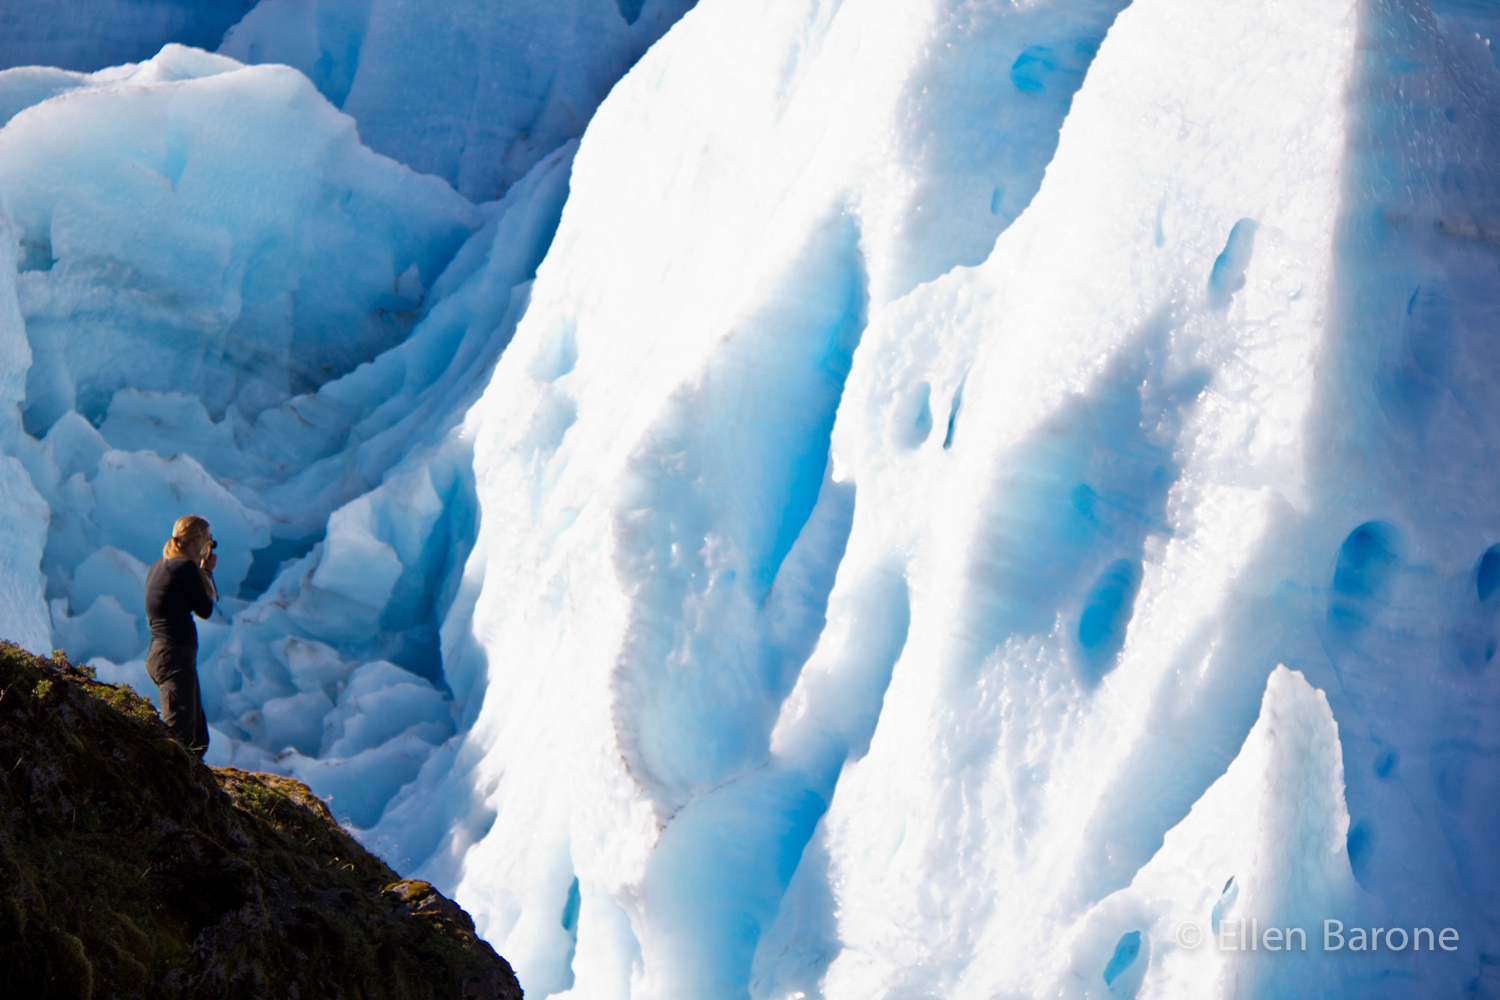 Conservation photographer Bridget Besaw at Melimoyu glacier, Melimoyu wilderness lodge, Patagonia Sur, Patagonia, Chile.